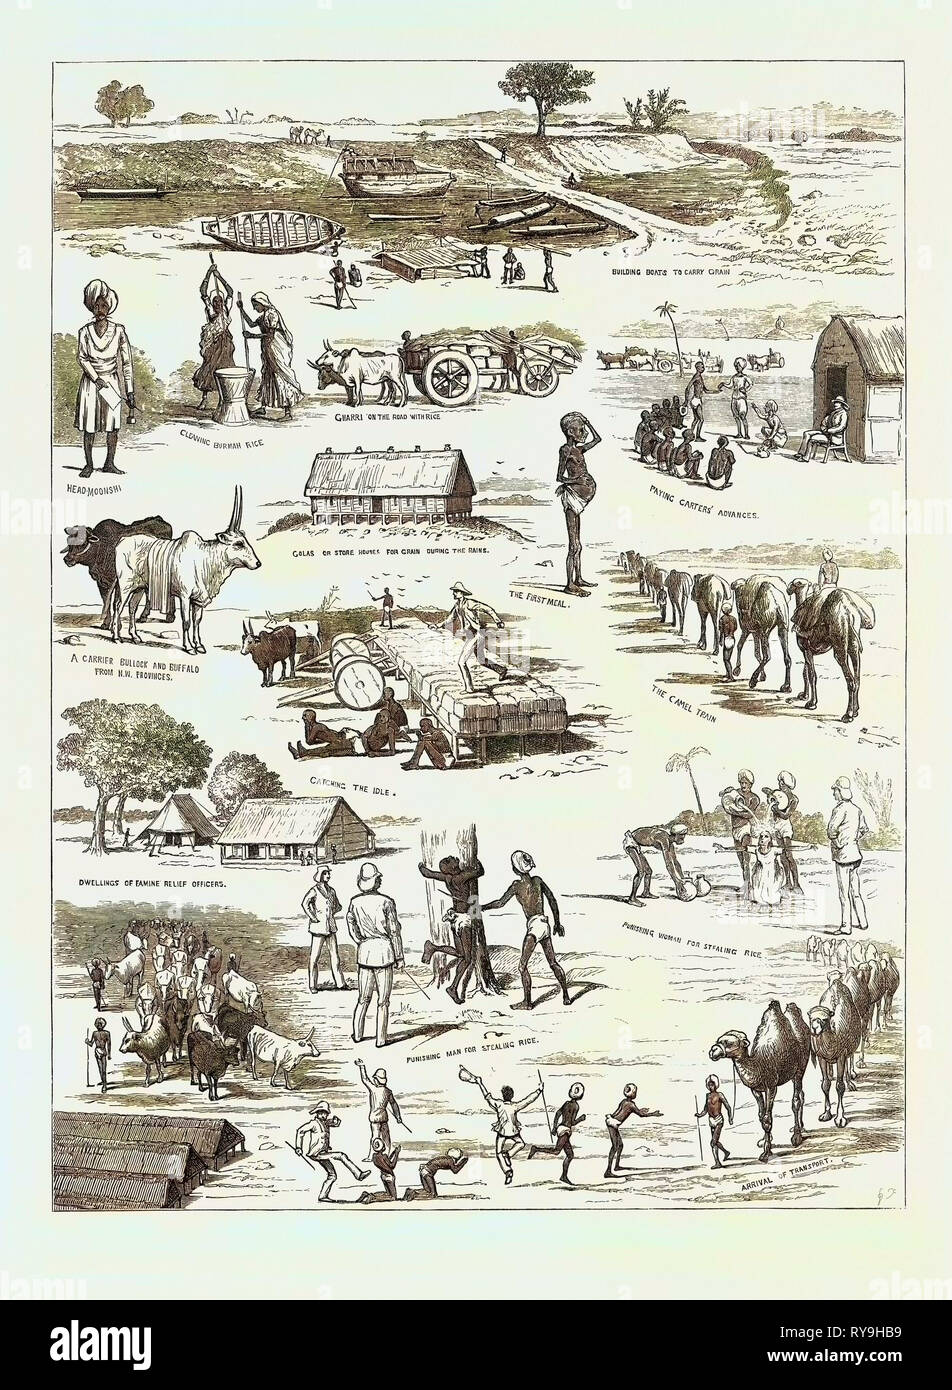 The Indian Famine, Sketches in the Affected Districts, by a Member of the Famine Relief Staff - Stock Image